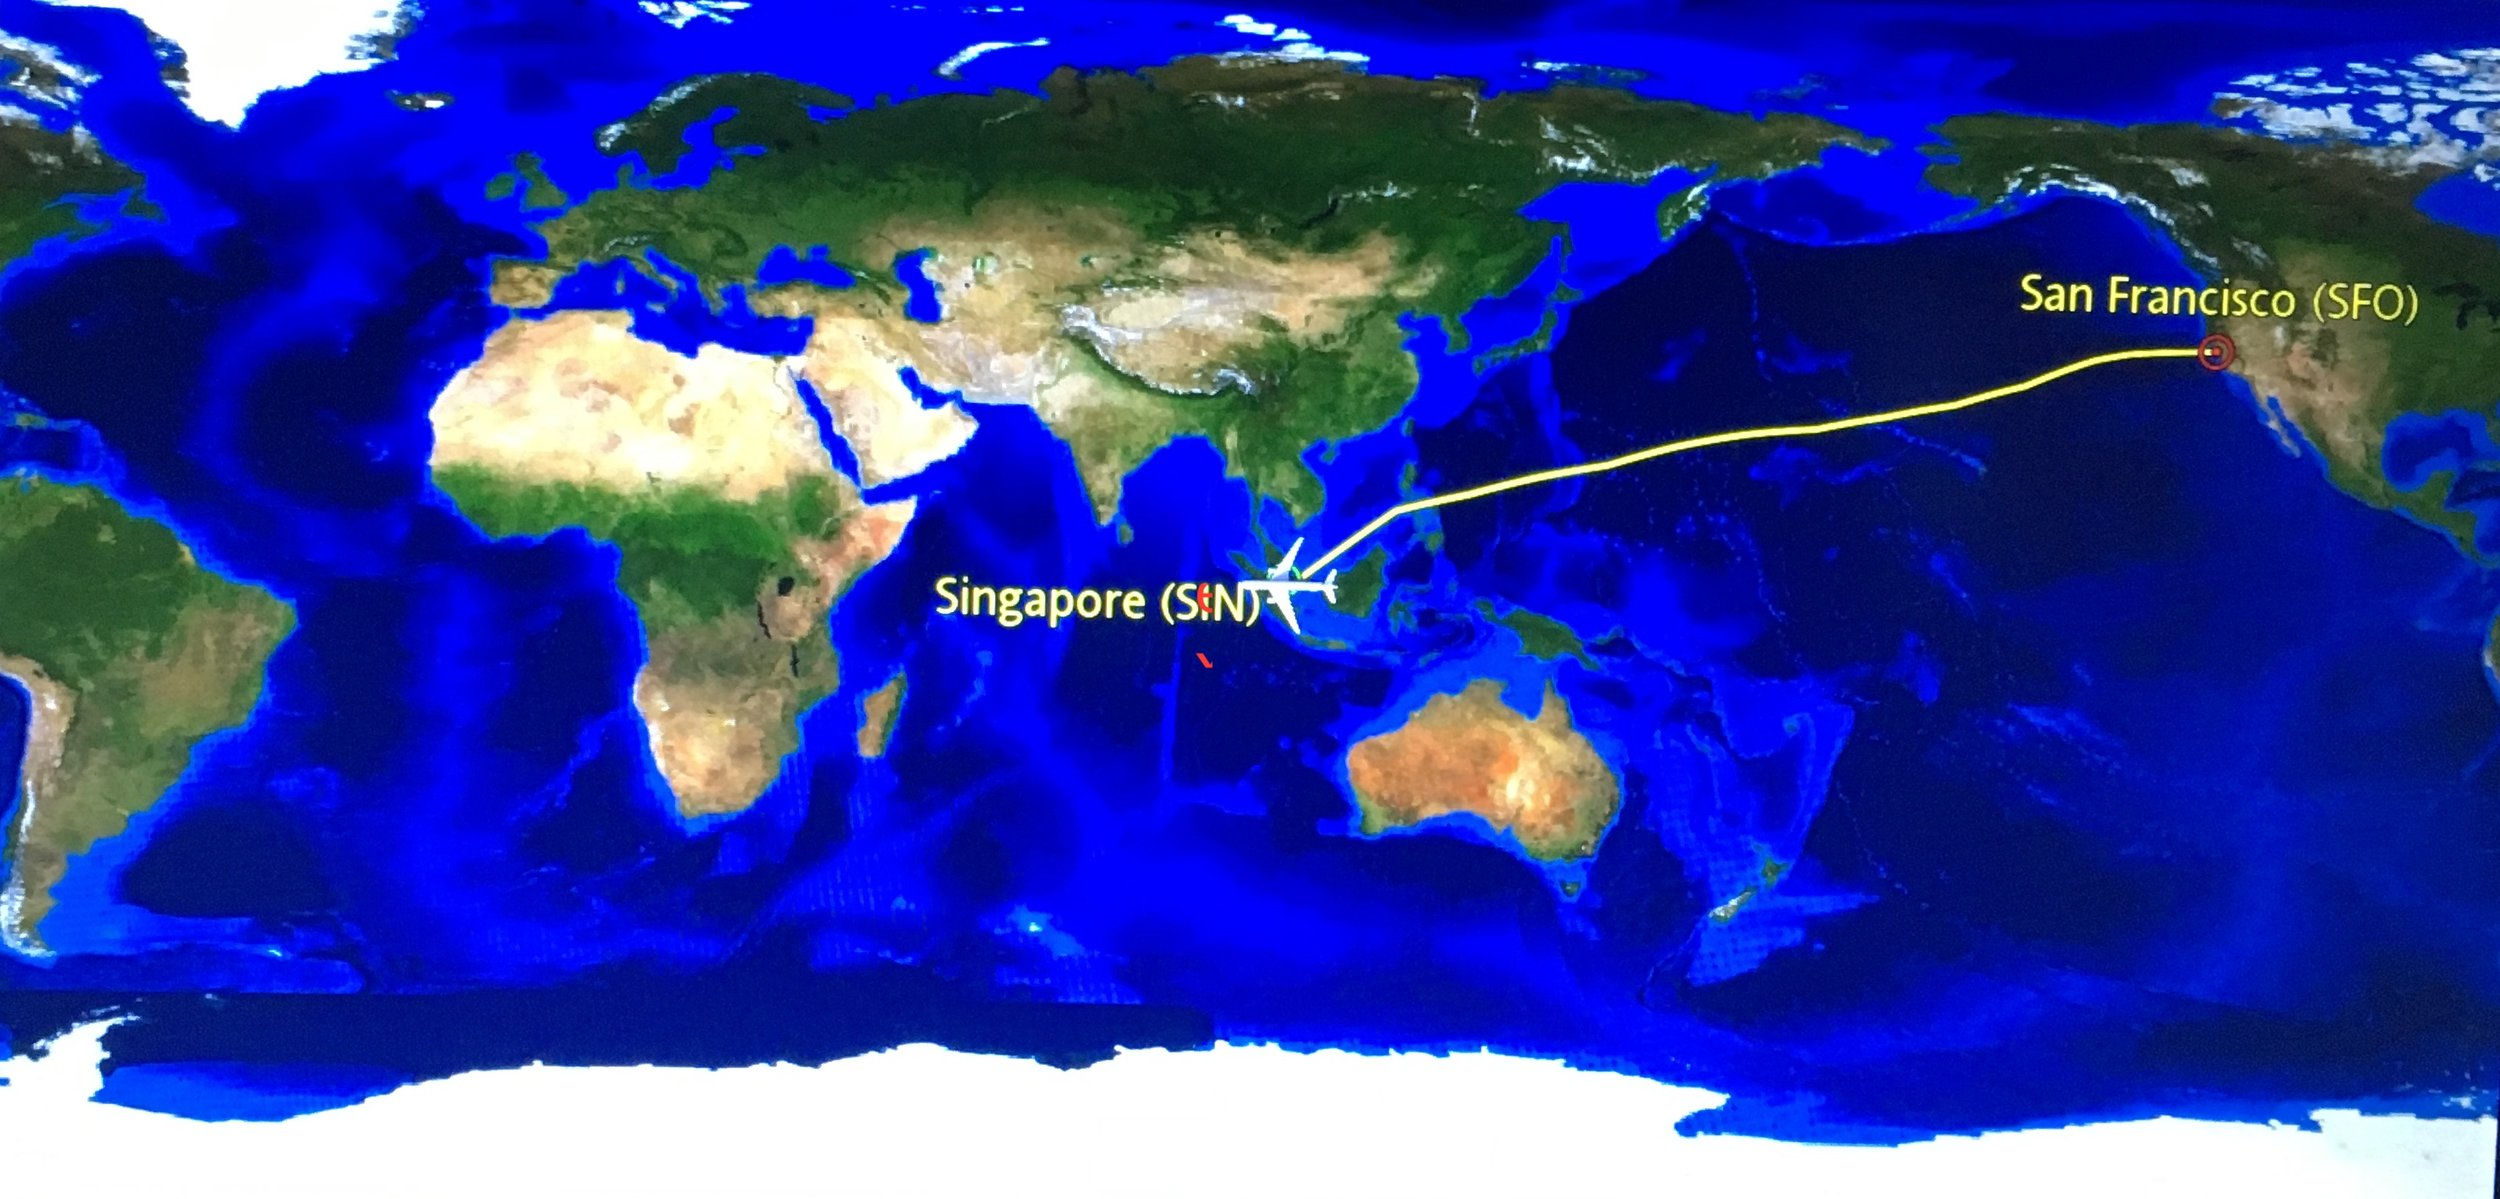 San Francisco to Singapore